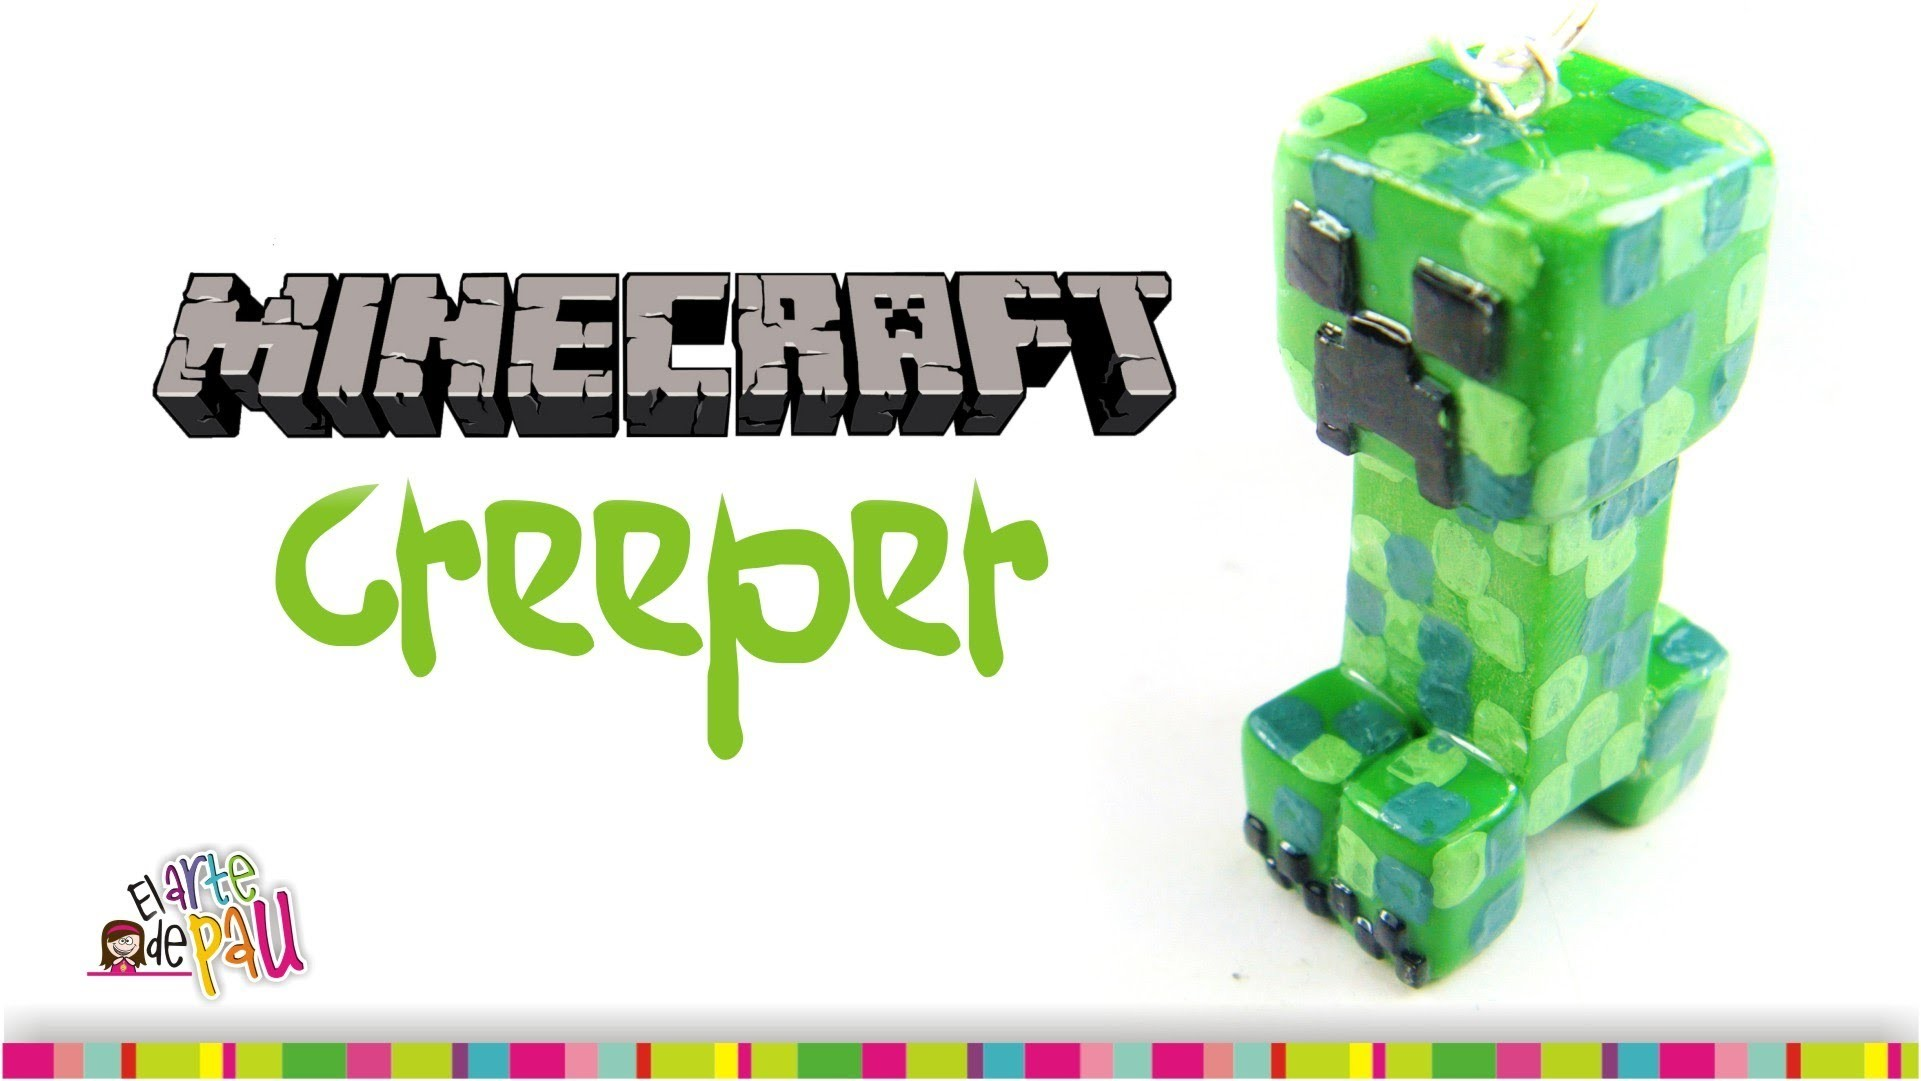 CREEPER Minecraft Polymer Clay tutorial. Creeper de arcilla polimérica